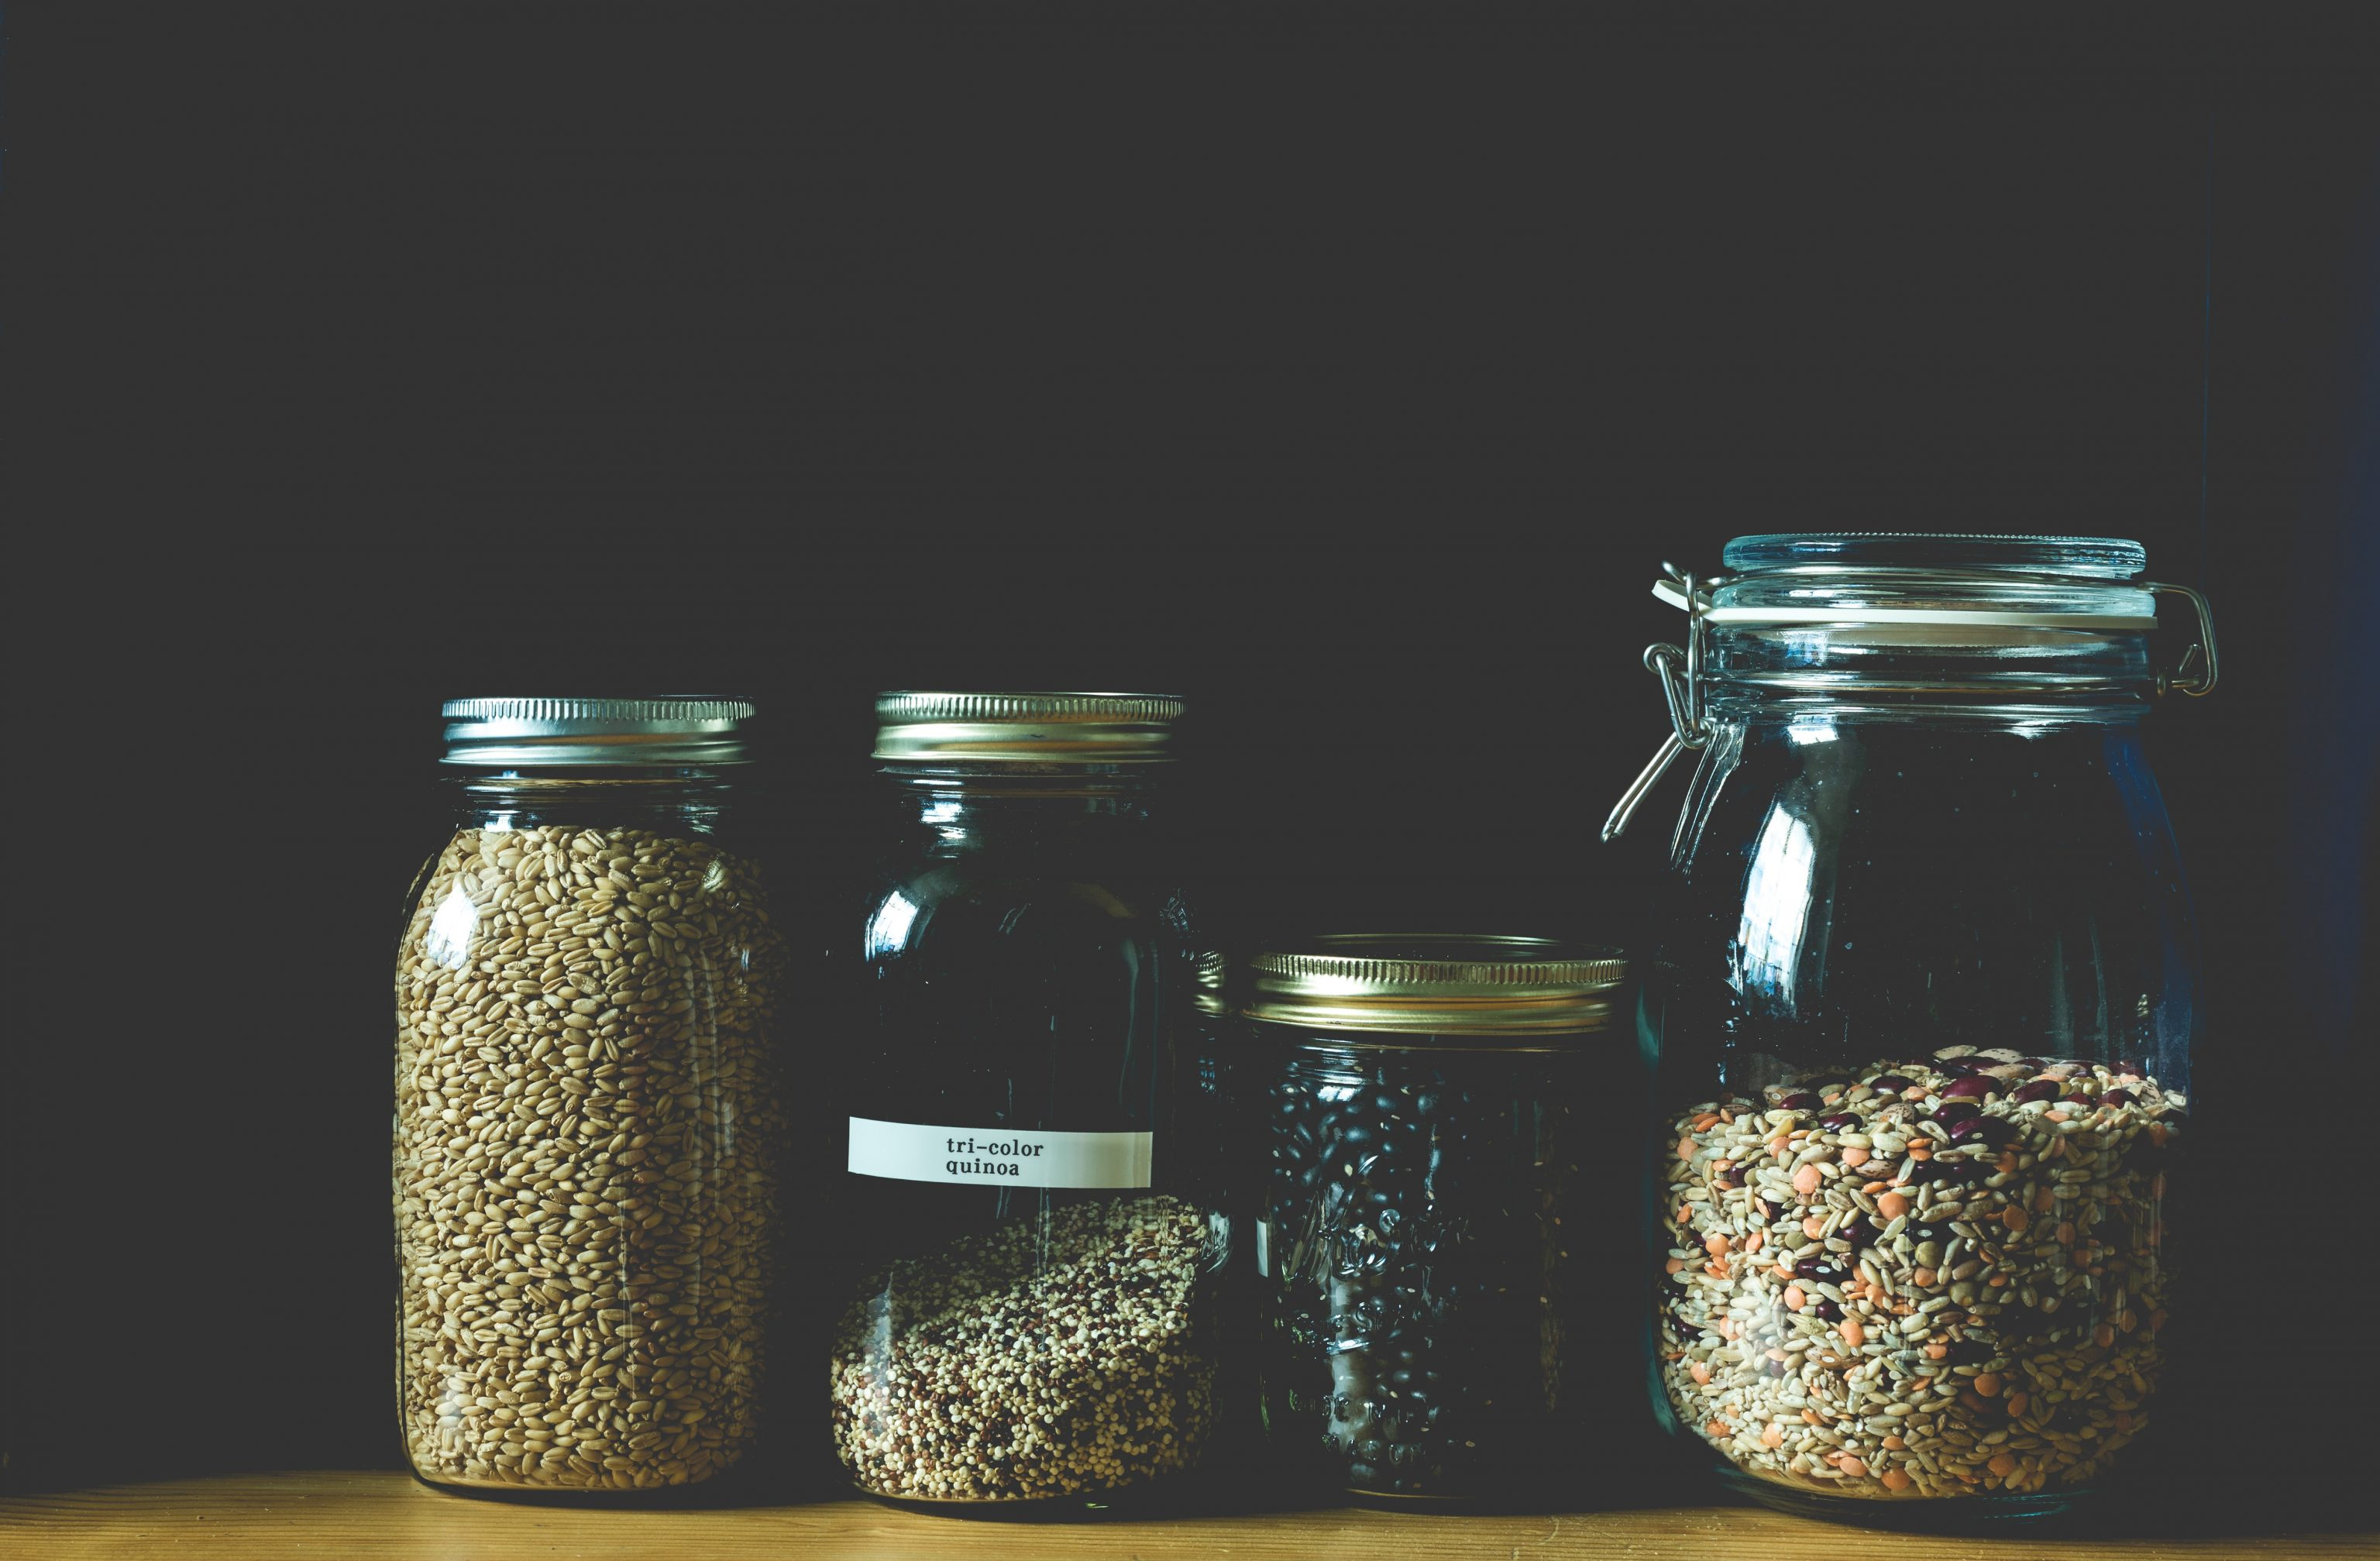 a collection of dried goods in mason jars